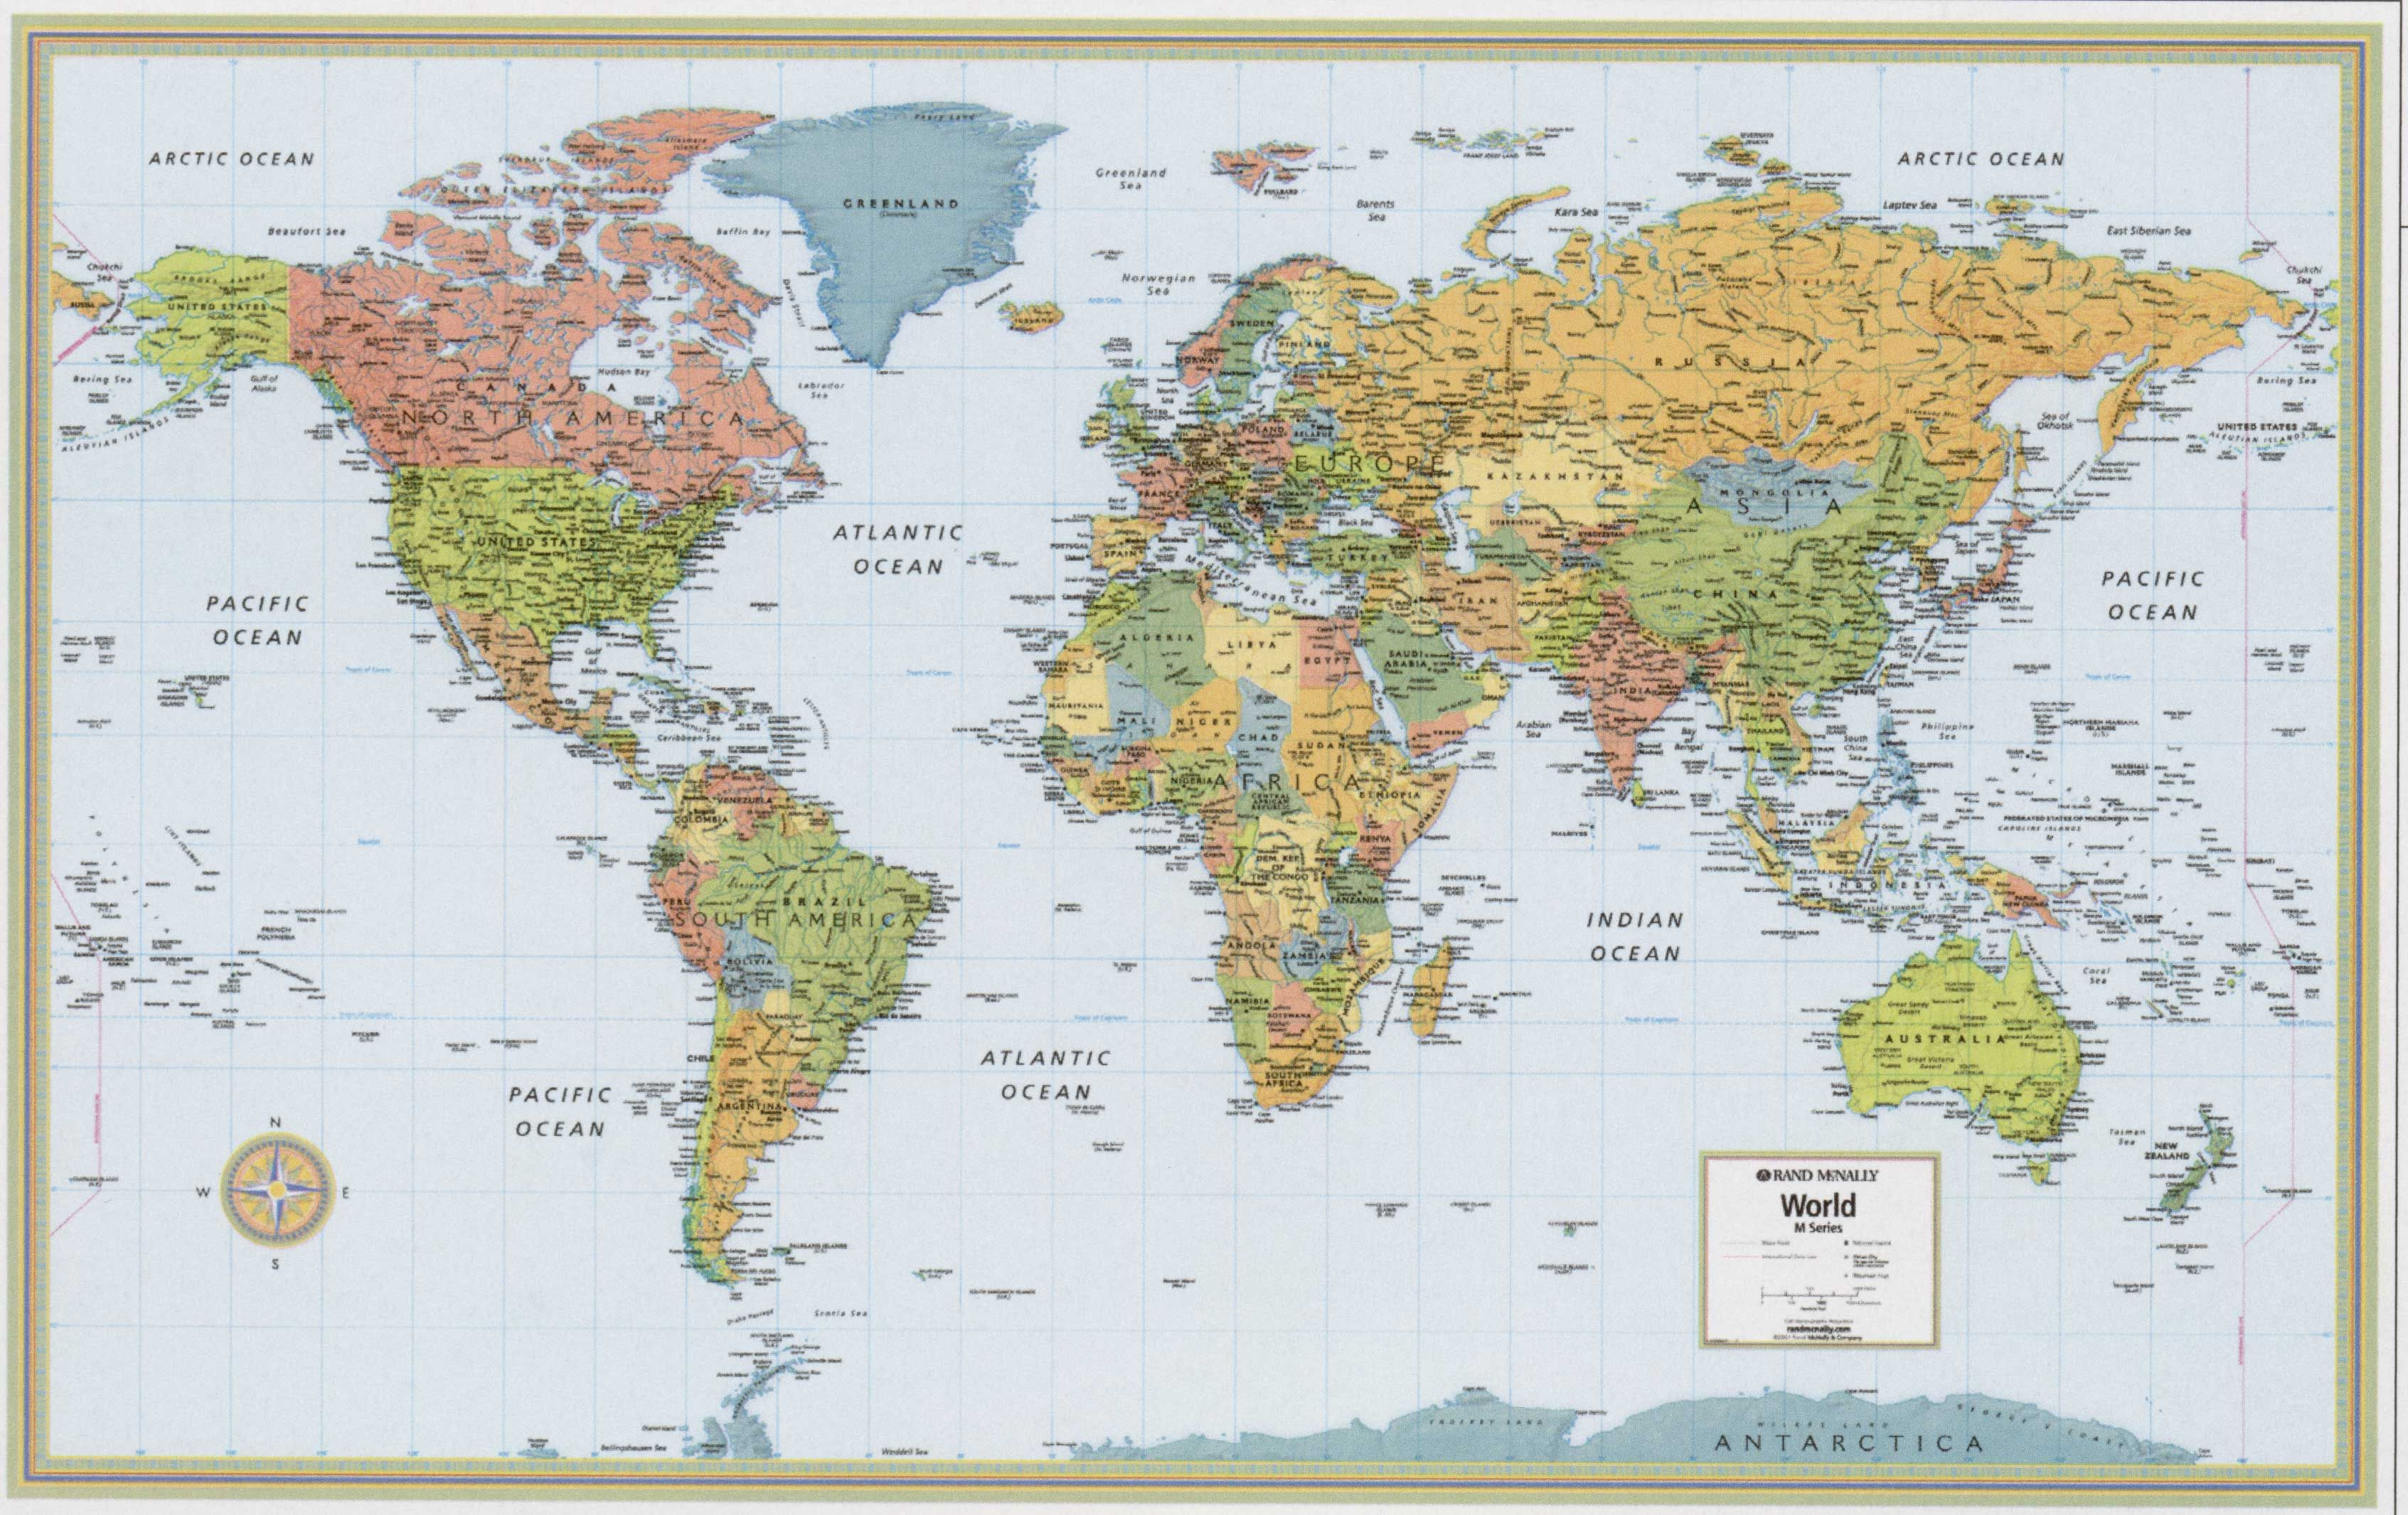 Free world map thank you readers for your overwhelming support free world map thank you readers for your overwhelming support from around the world gumiabroncs Choice Image